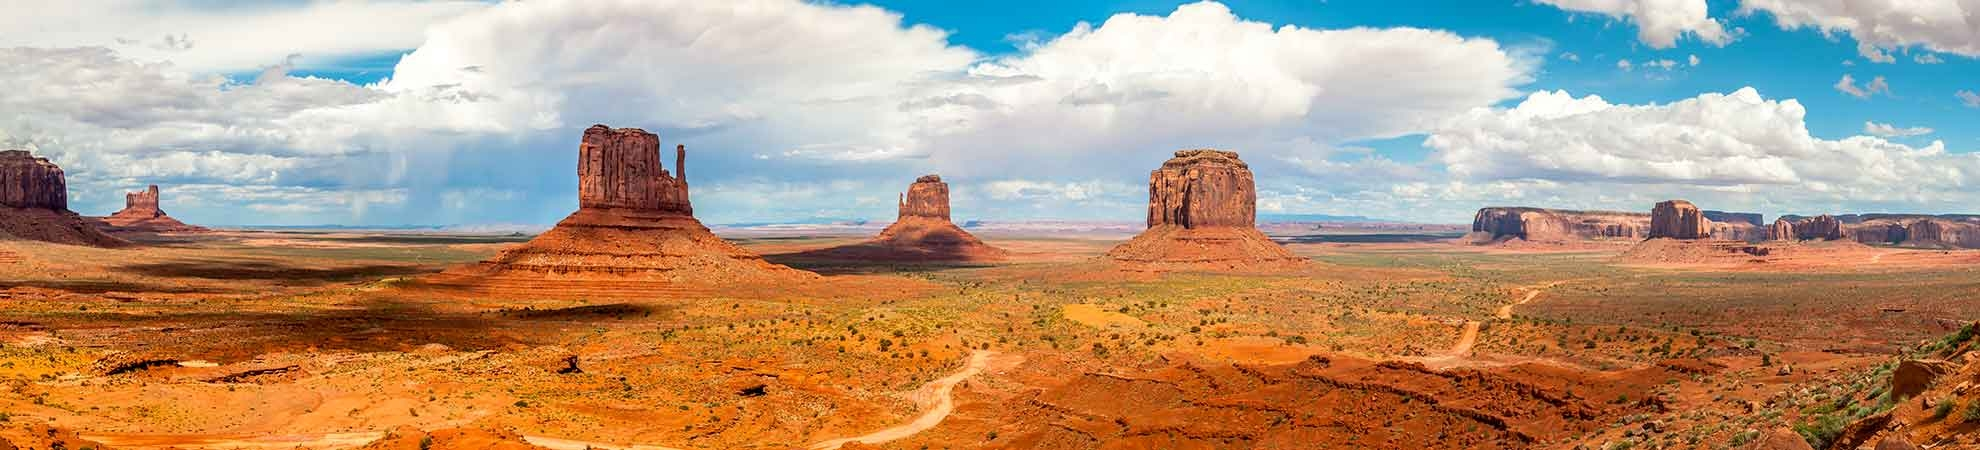 Voyage Monument Valley